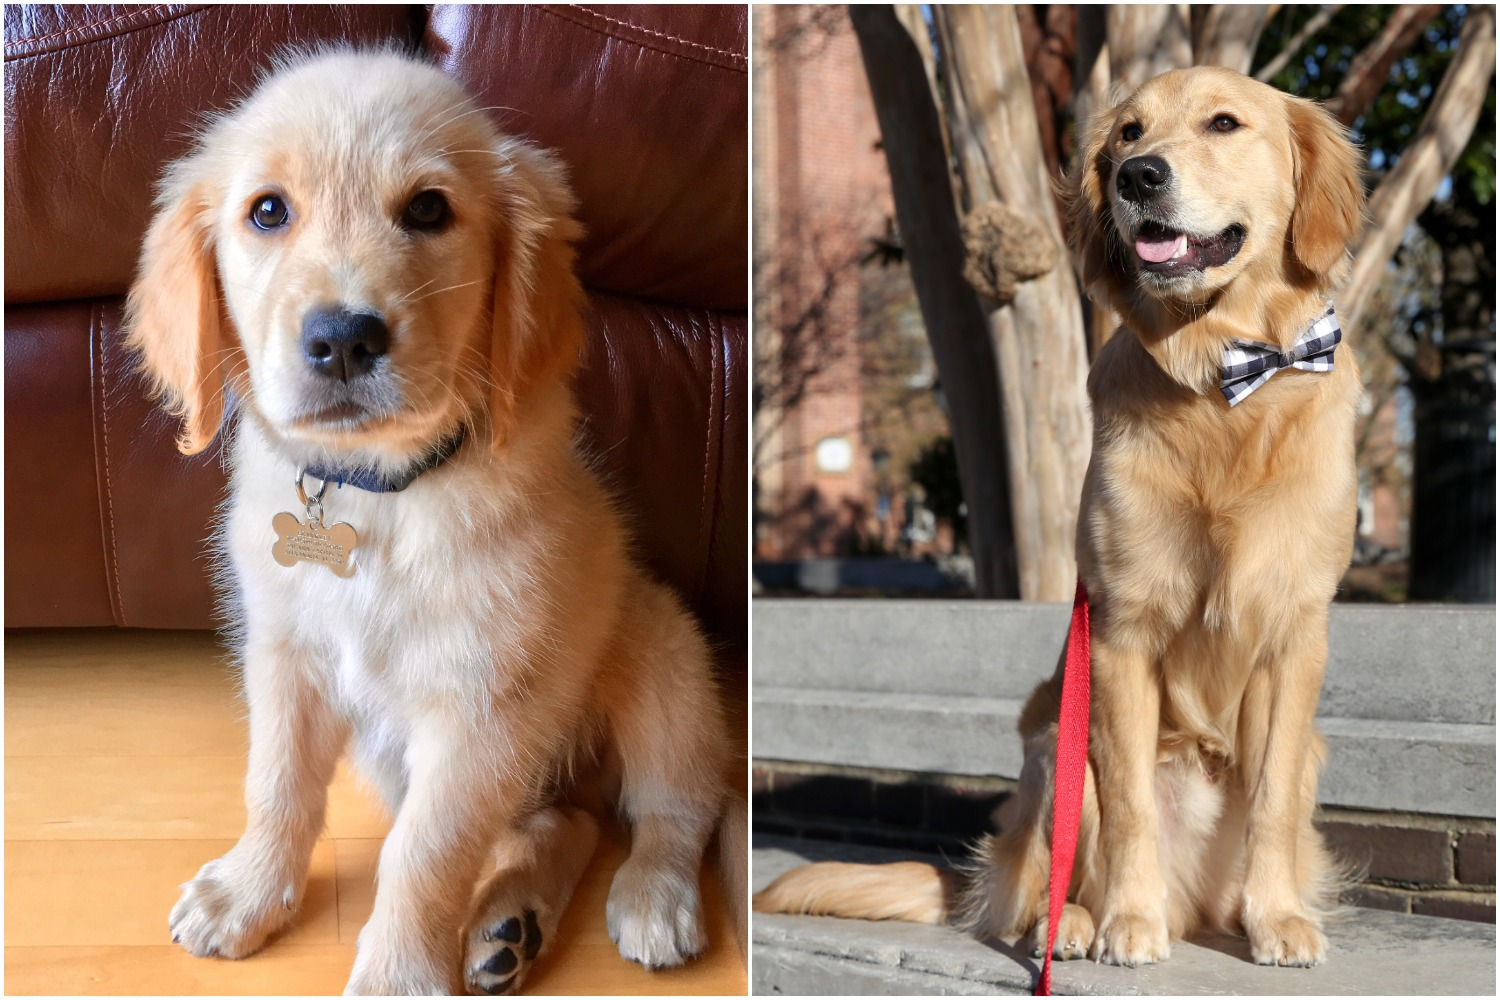 Brinkley has always been a sweet golden fluff ball!{ }